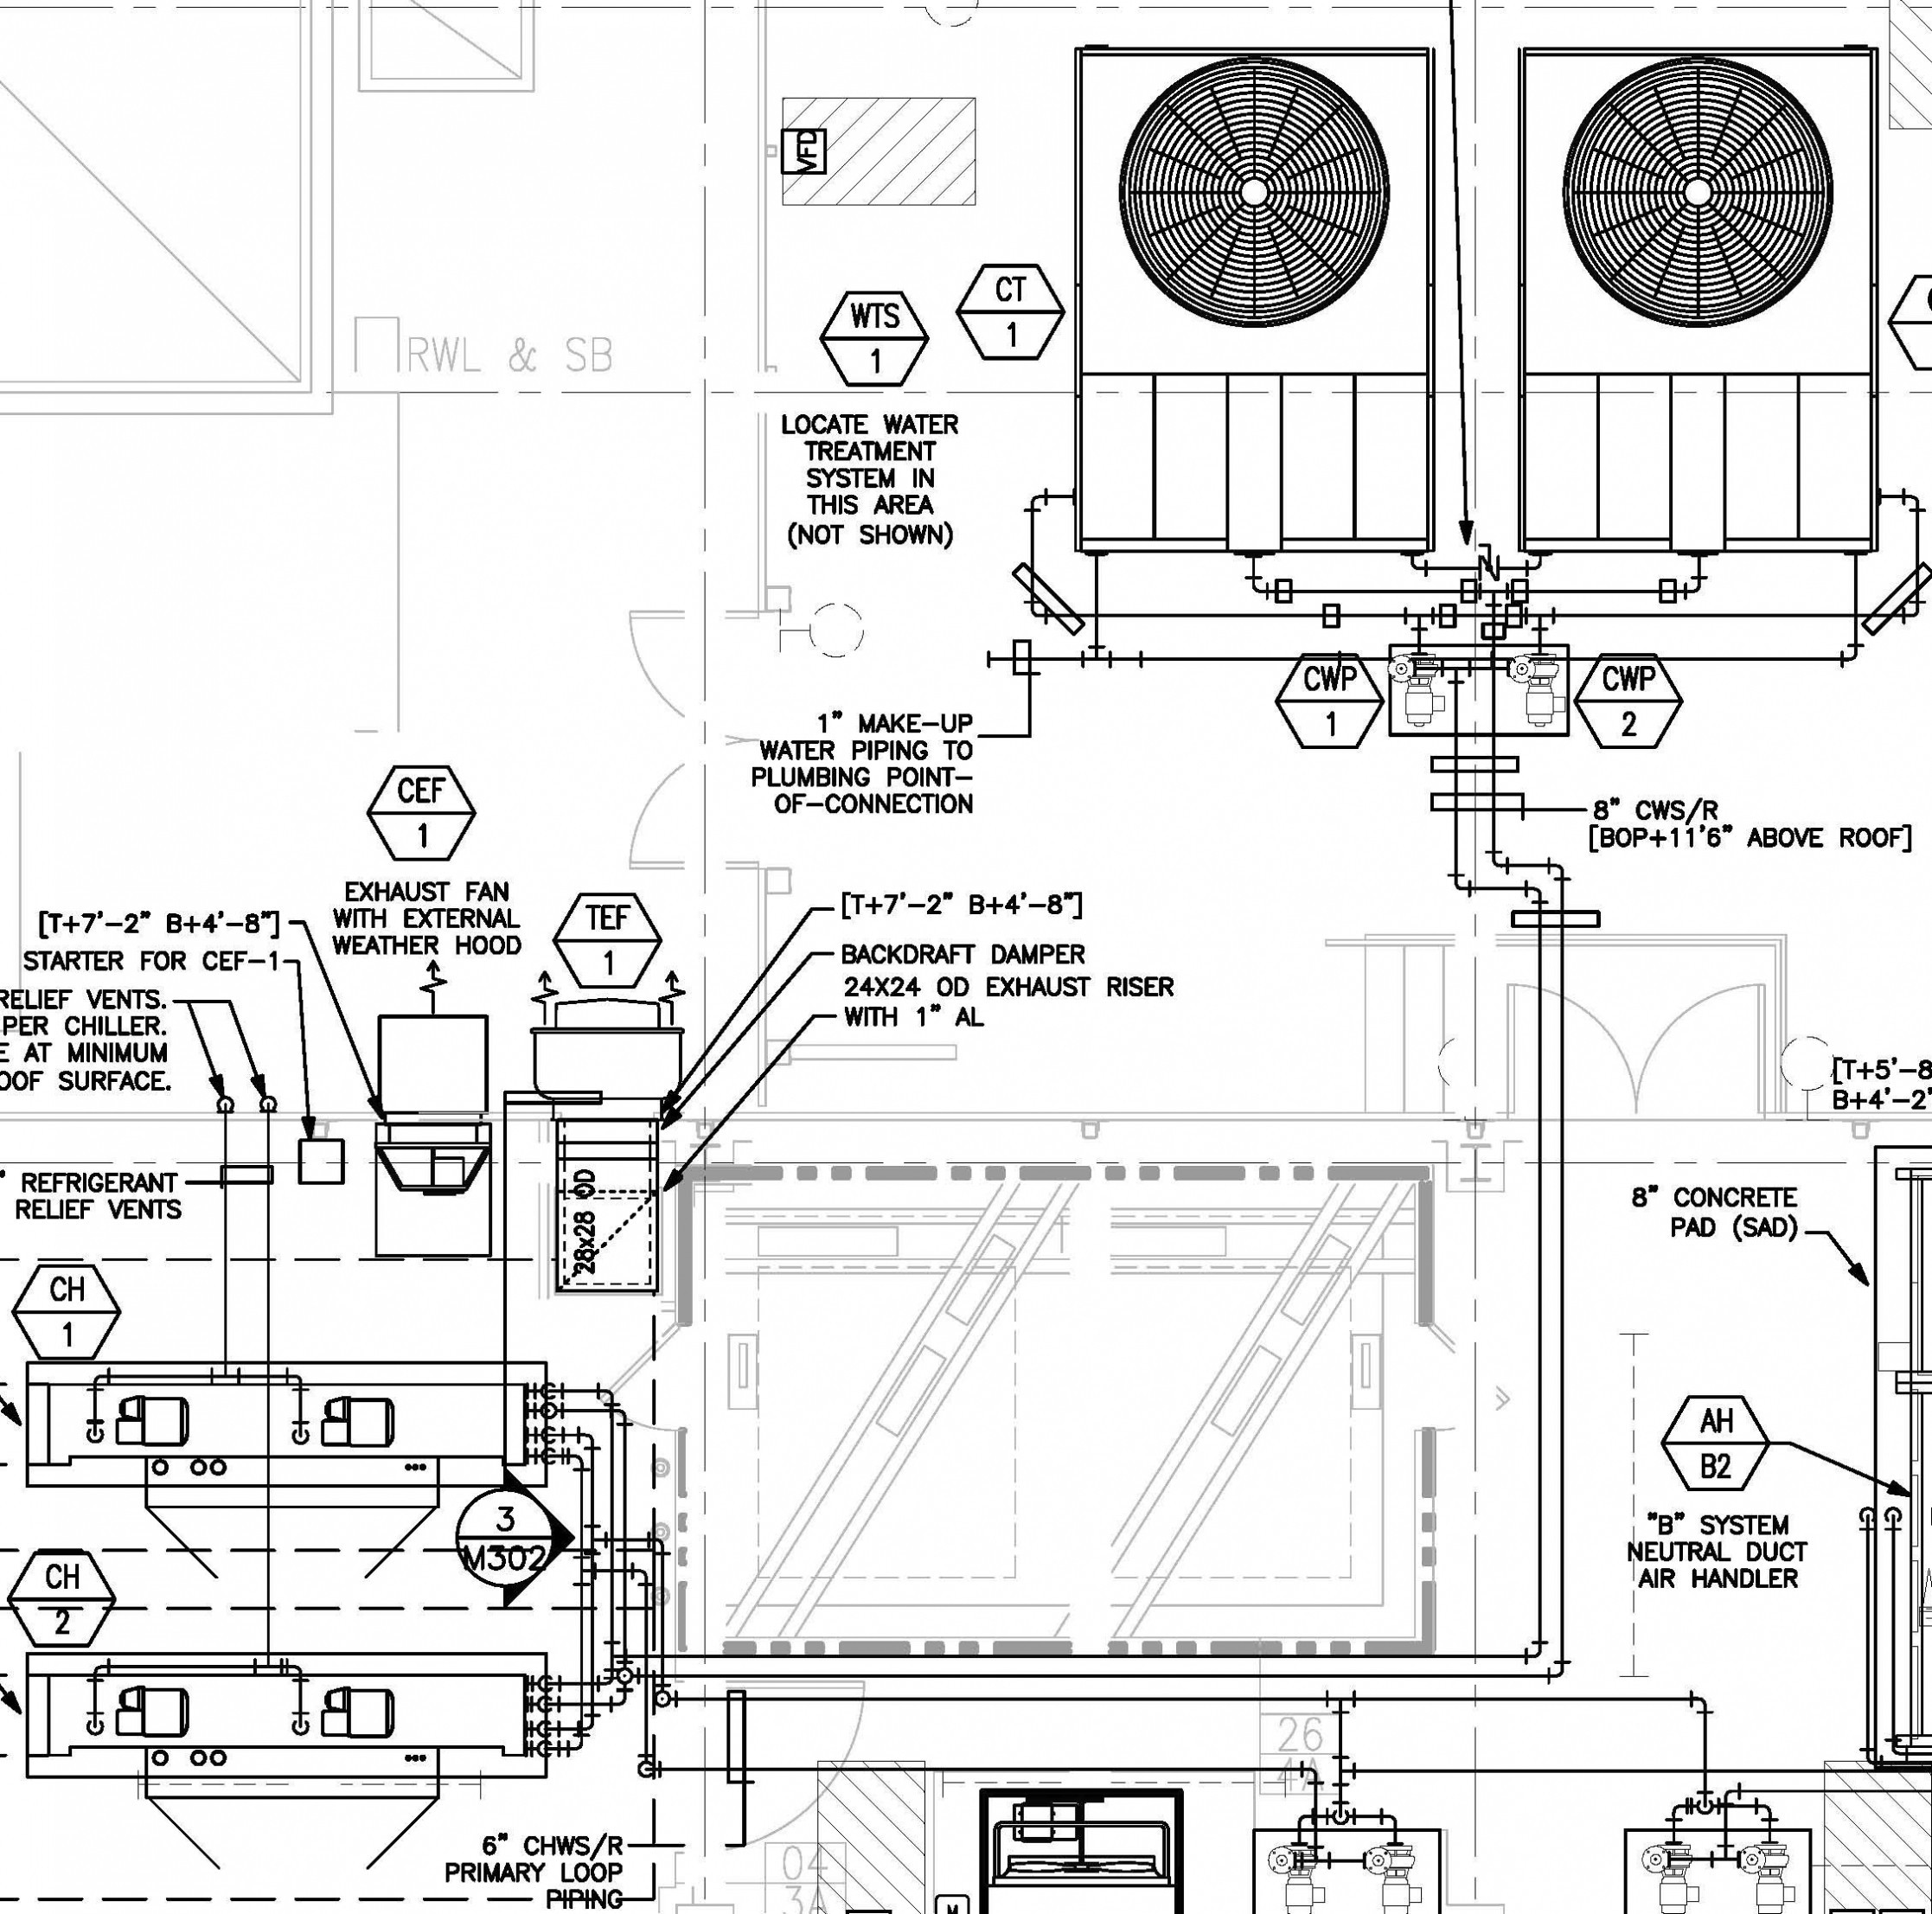 816 Vexar Wiring Diagram | Wiring Resources on furnace parts diagram, gas furnace diagram, furnace blower motor, furnace blower frame, furnace blower cover, furnace blower parts, furnace blower starter, furnace schematic diagram, furnace limit circuit open, furnace blower relay, tempstar furnace diagram, furnace repair, furnace blower door, rheem furnace troubleshooting diagram, lennox pulse 21 parts diagram, furnace fan relay, furnace fan blower assemblies, electric furnace diagram, furnace oil pump failure signs, furnace control wiring,